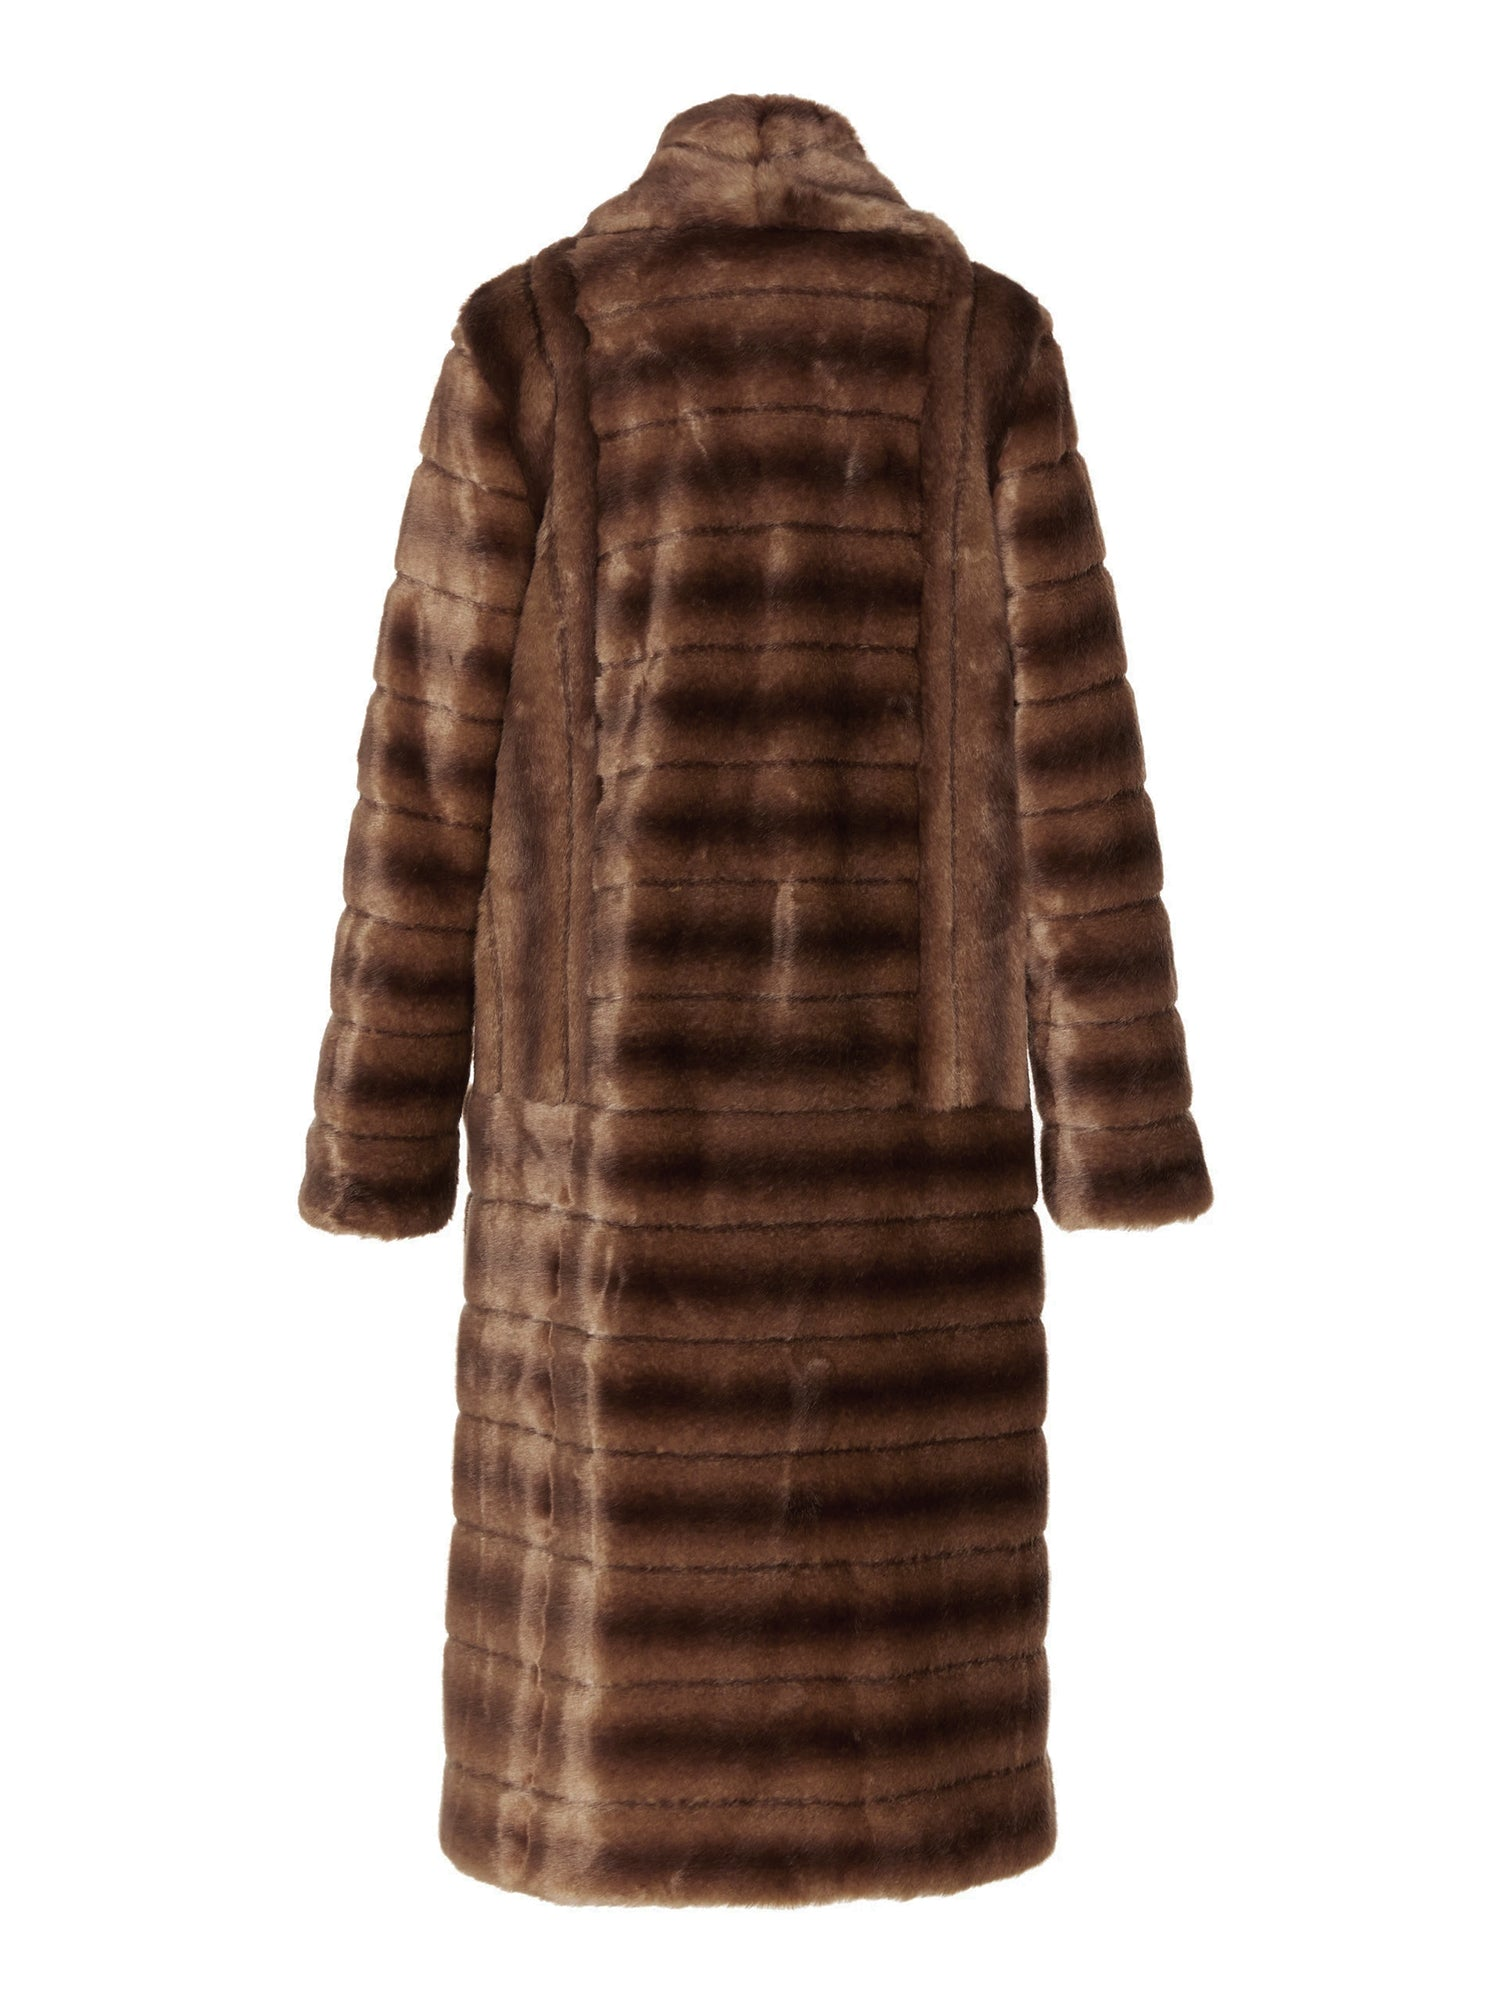 A Packshot Of Marei1998's Timeless Echinacea Long Faux Fur Coat In Classic Brown Color. Featuring Oversized Silhouette And Wide Shawl Neckline. Investment Piece / Winter Essential. Back View. Resort 2020 Collection - Furless Friendship.